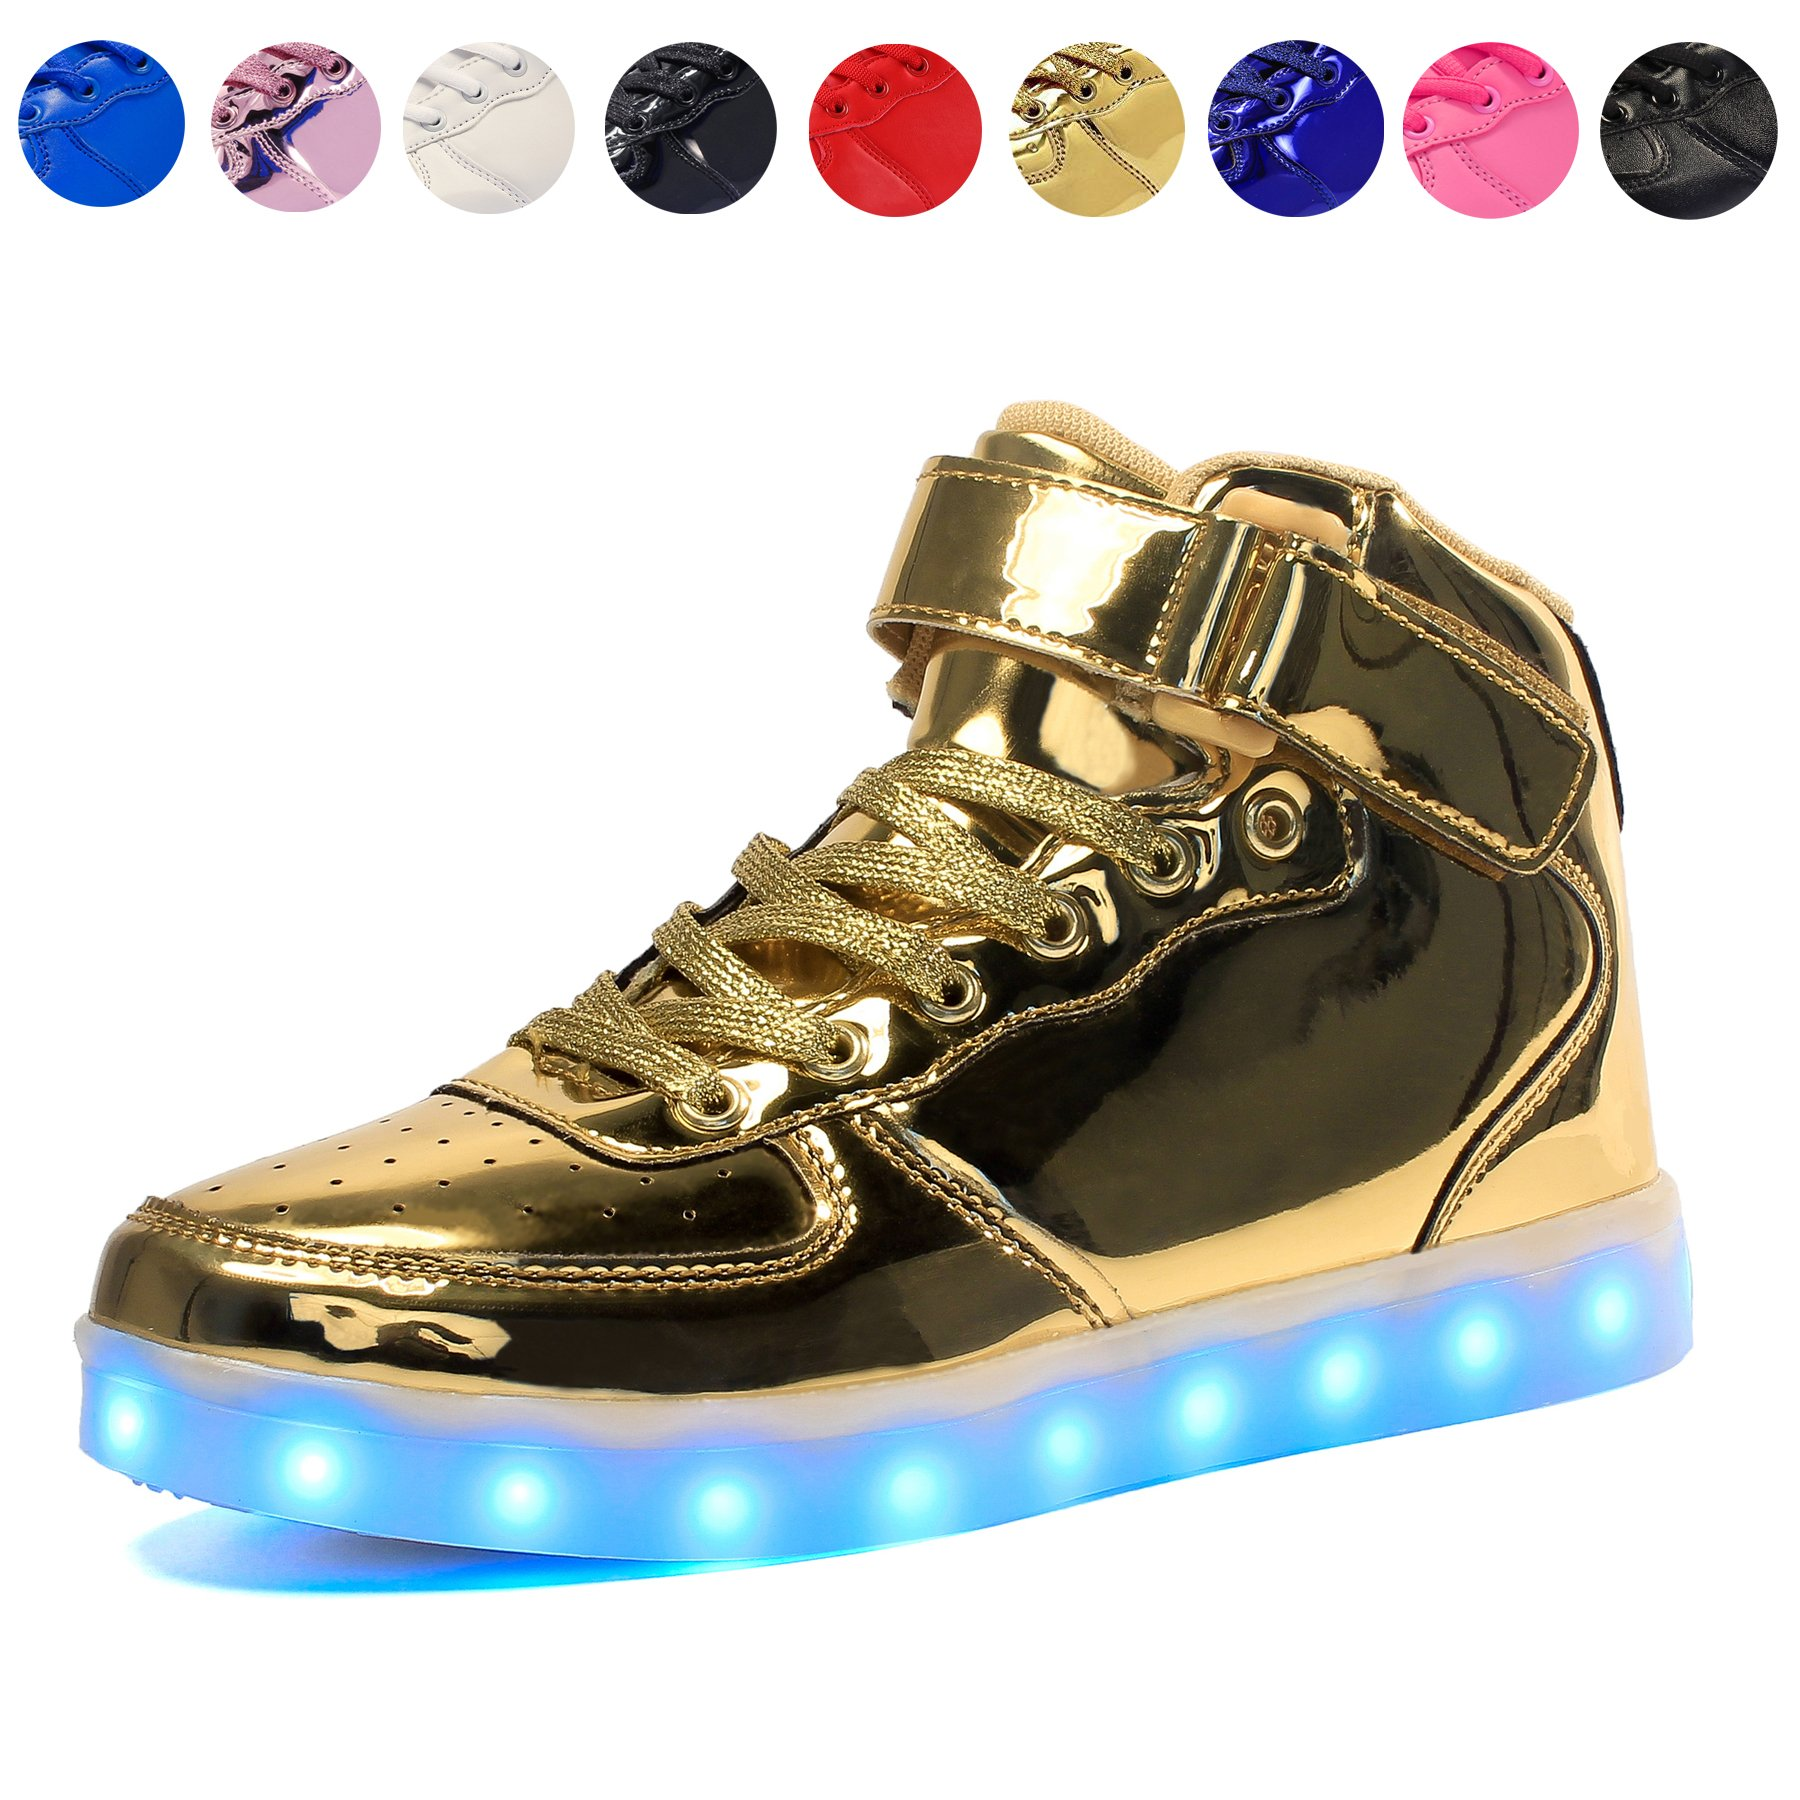 Voovix Kids LED Light up High-top Shoes Rechargeable Hi-Shine Glowing Sneakers for Boys and Girls Child Unisex(Gold,US9.5/CN27)